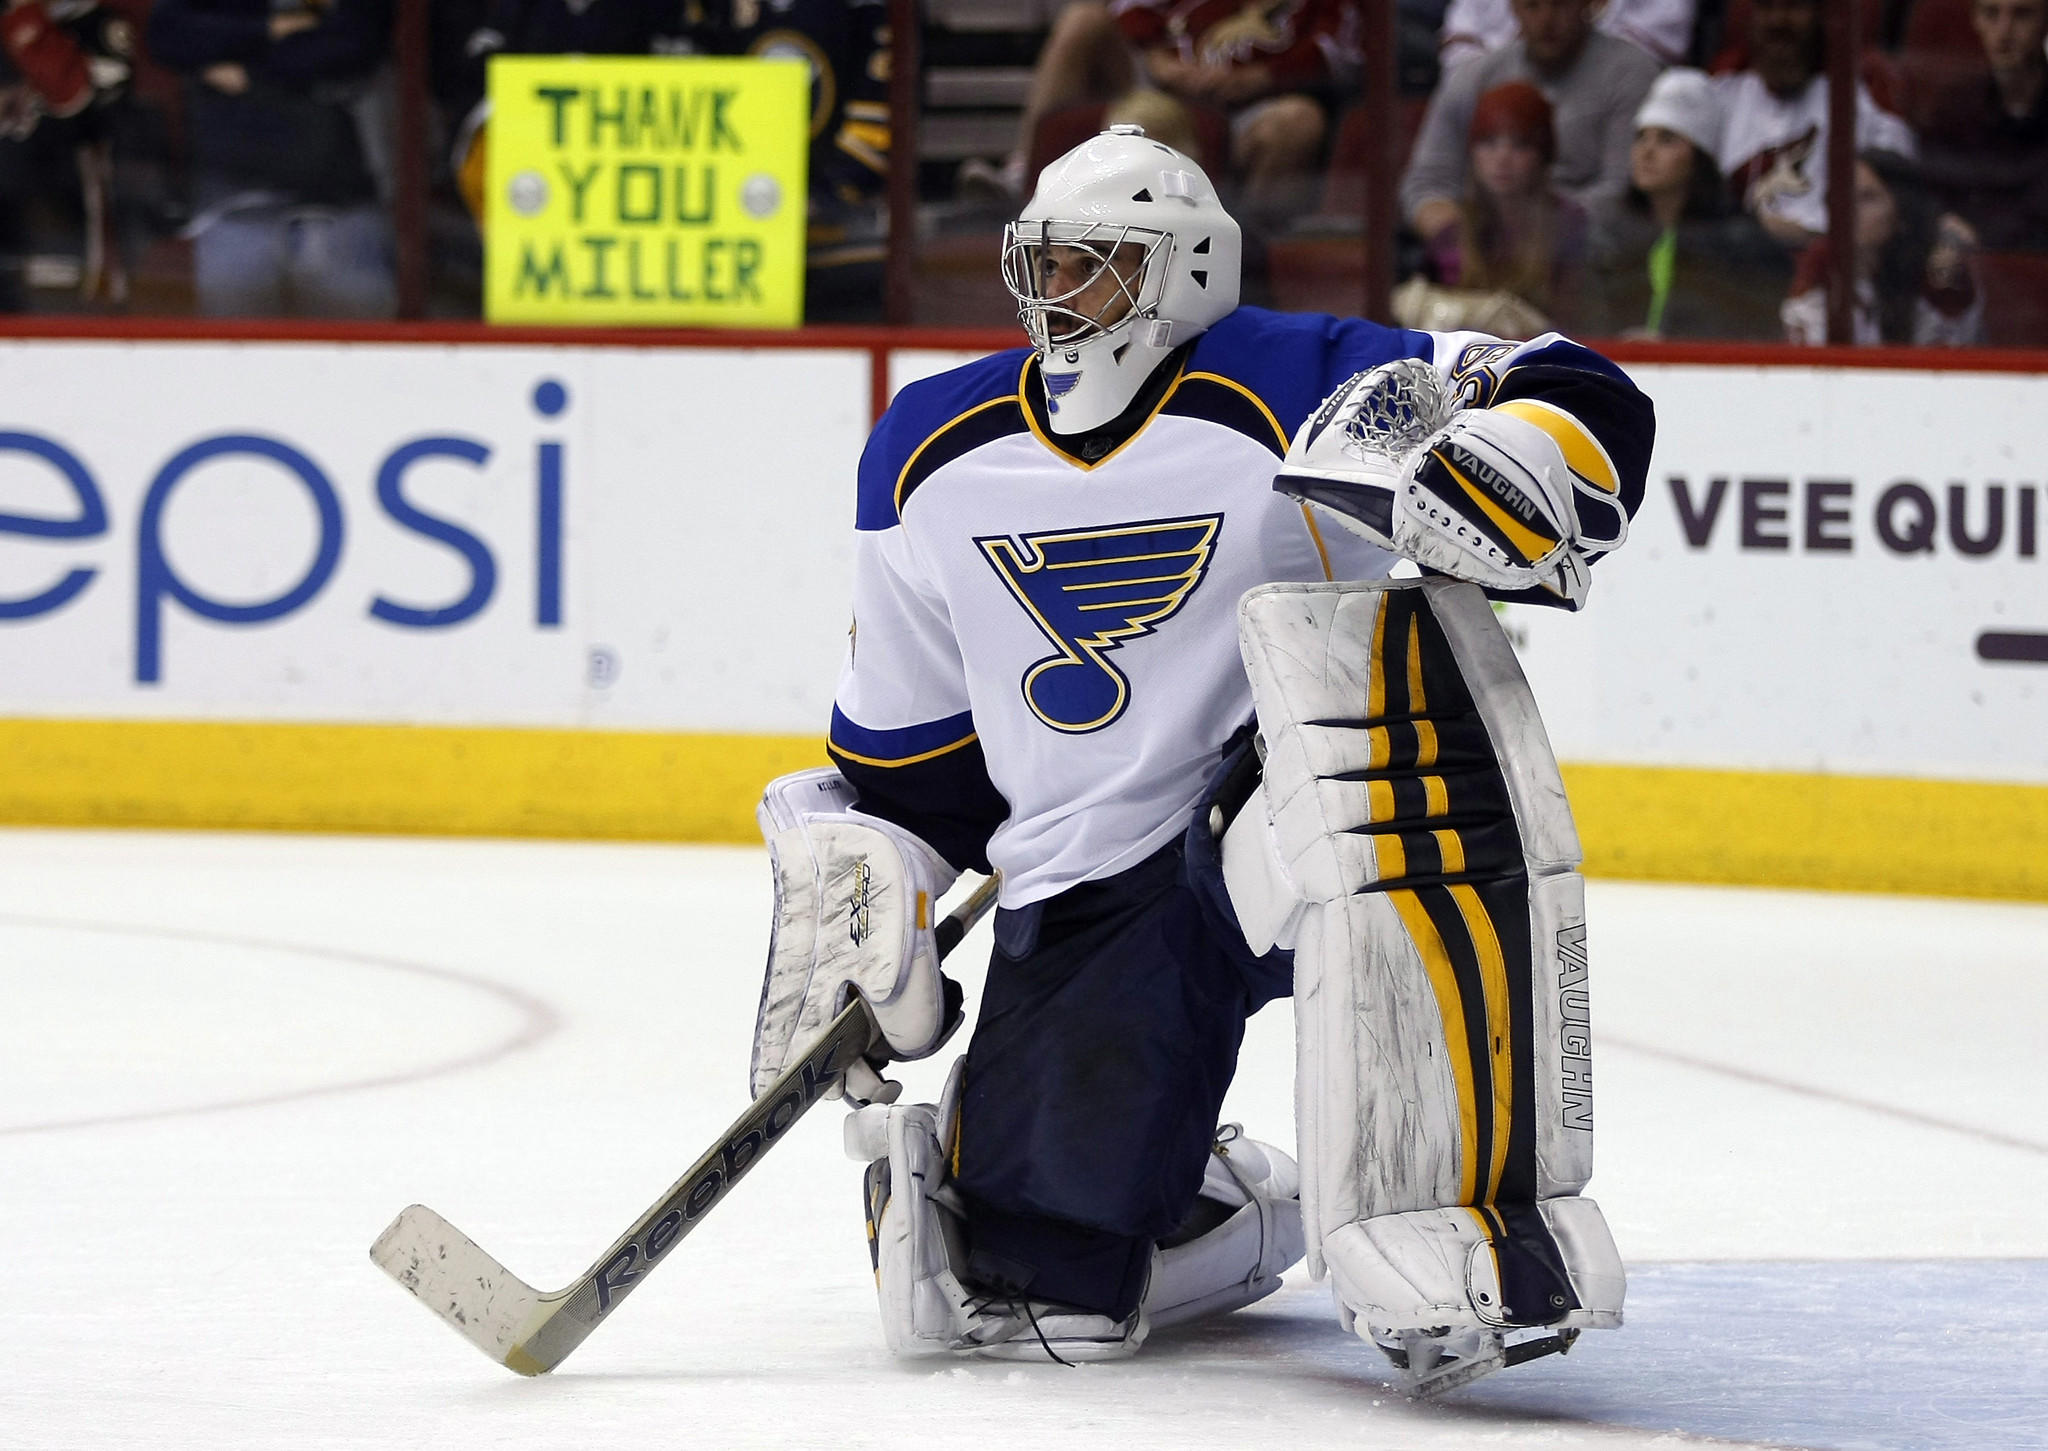 Blues goalie Ryan Miller warms up before the game against the Coyotes at Jobing.com Arena.